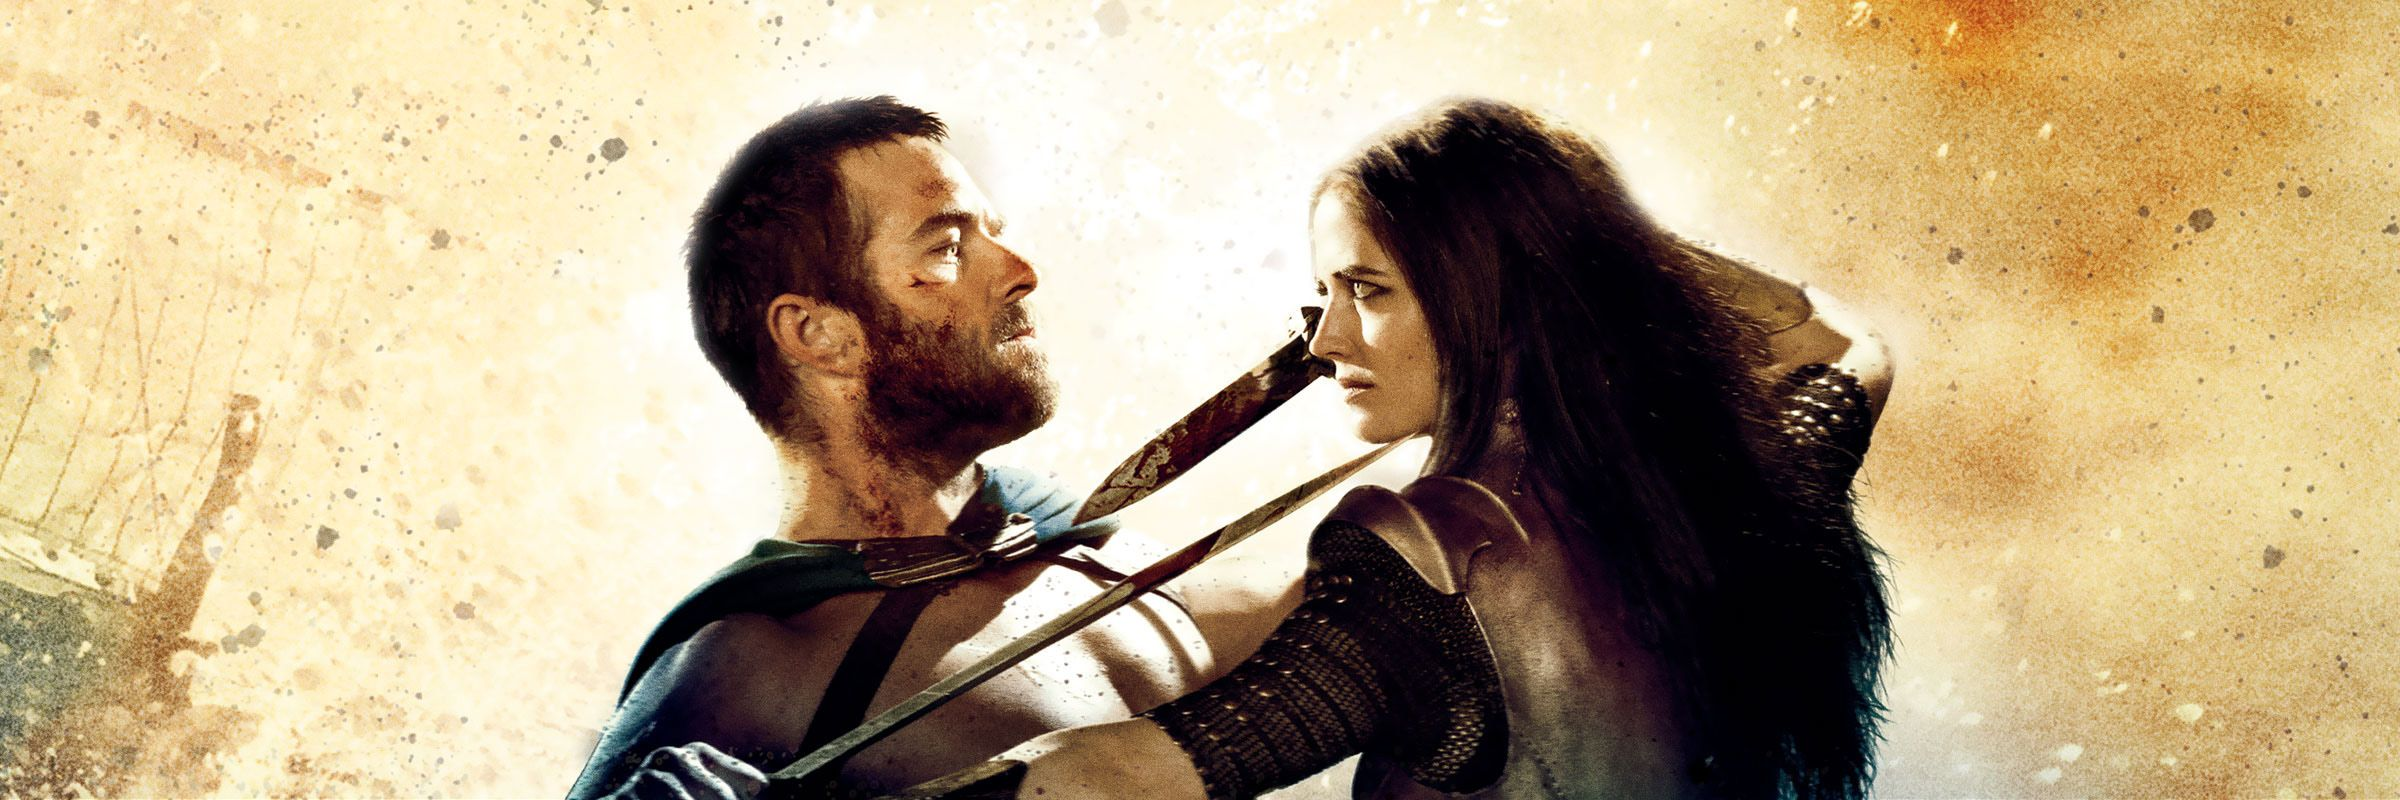 300 Full Movie >> 300 Rise Of An Empire Full Movie Movies Anywhere